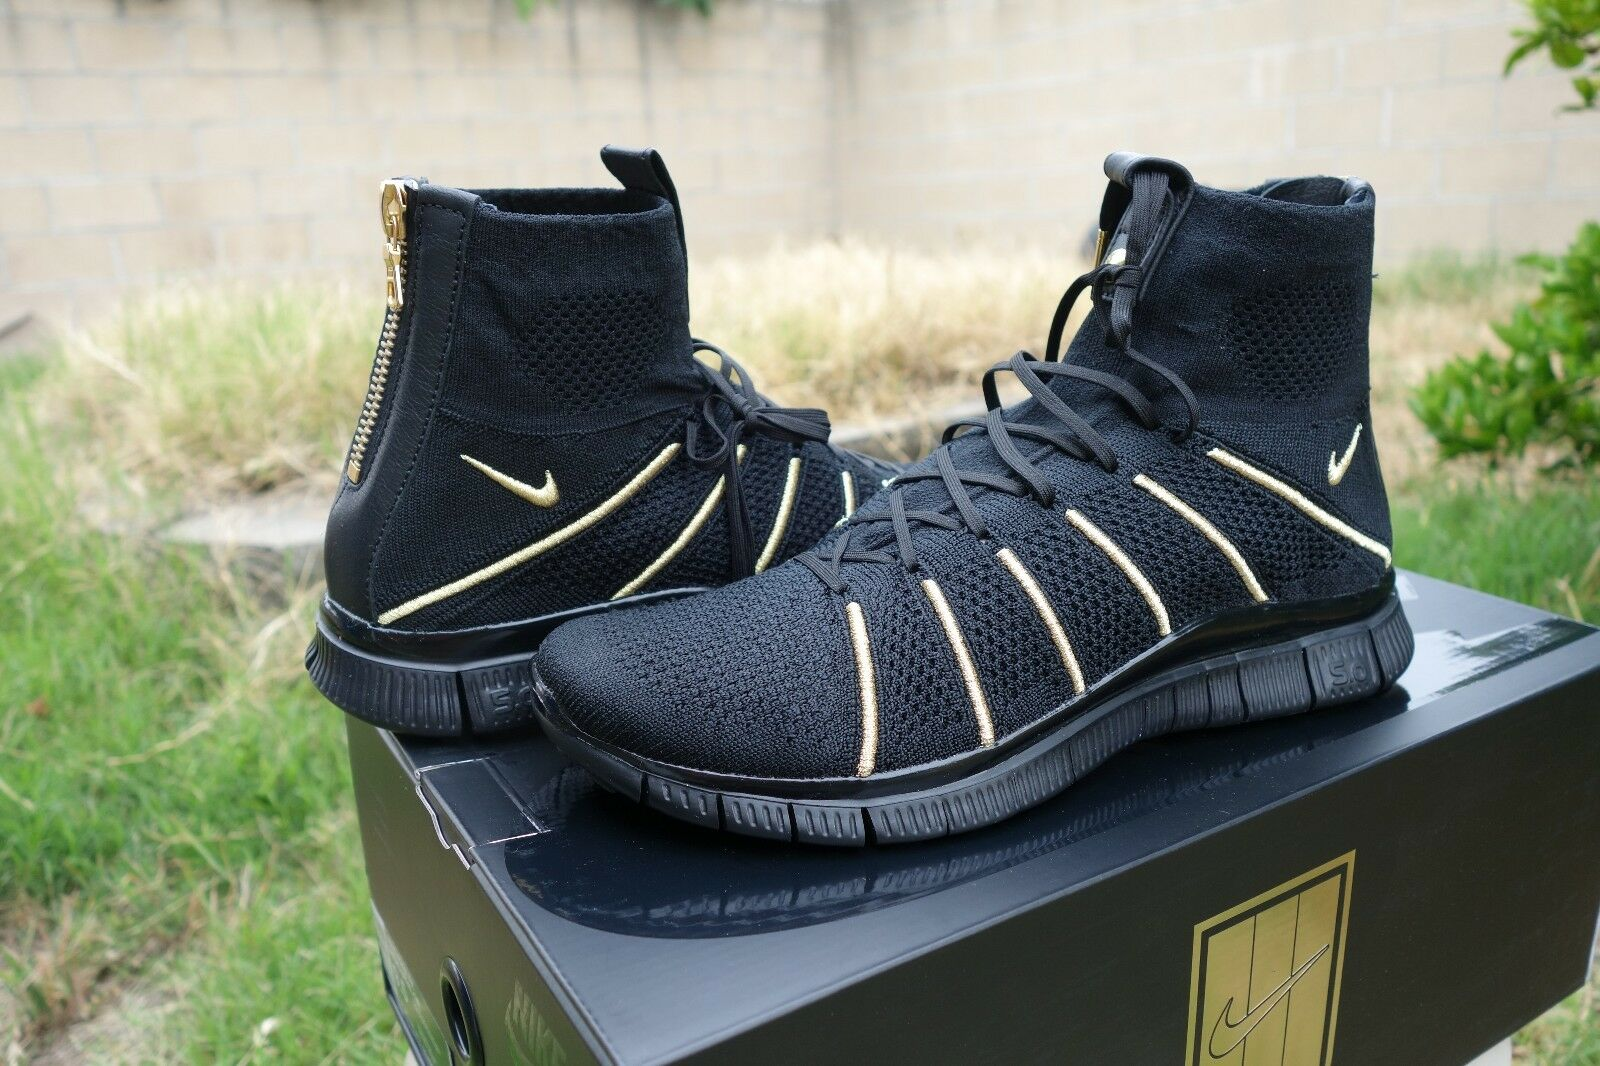 Nike Free Flyknit Mercurial X Olivier Rousteing Taille 9.5 834906-007 Balmain